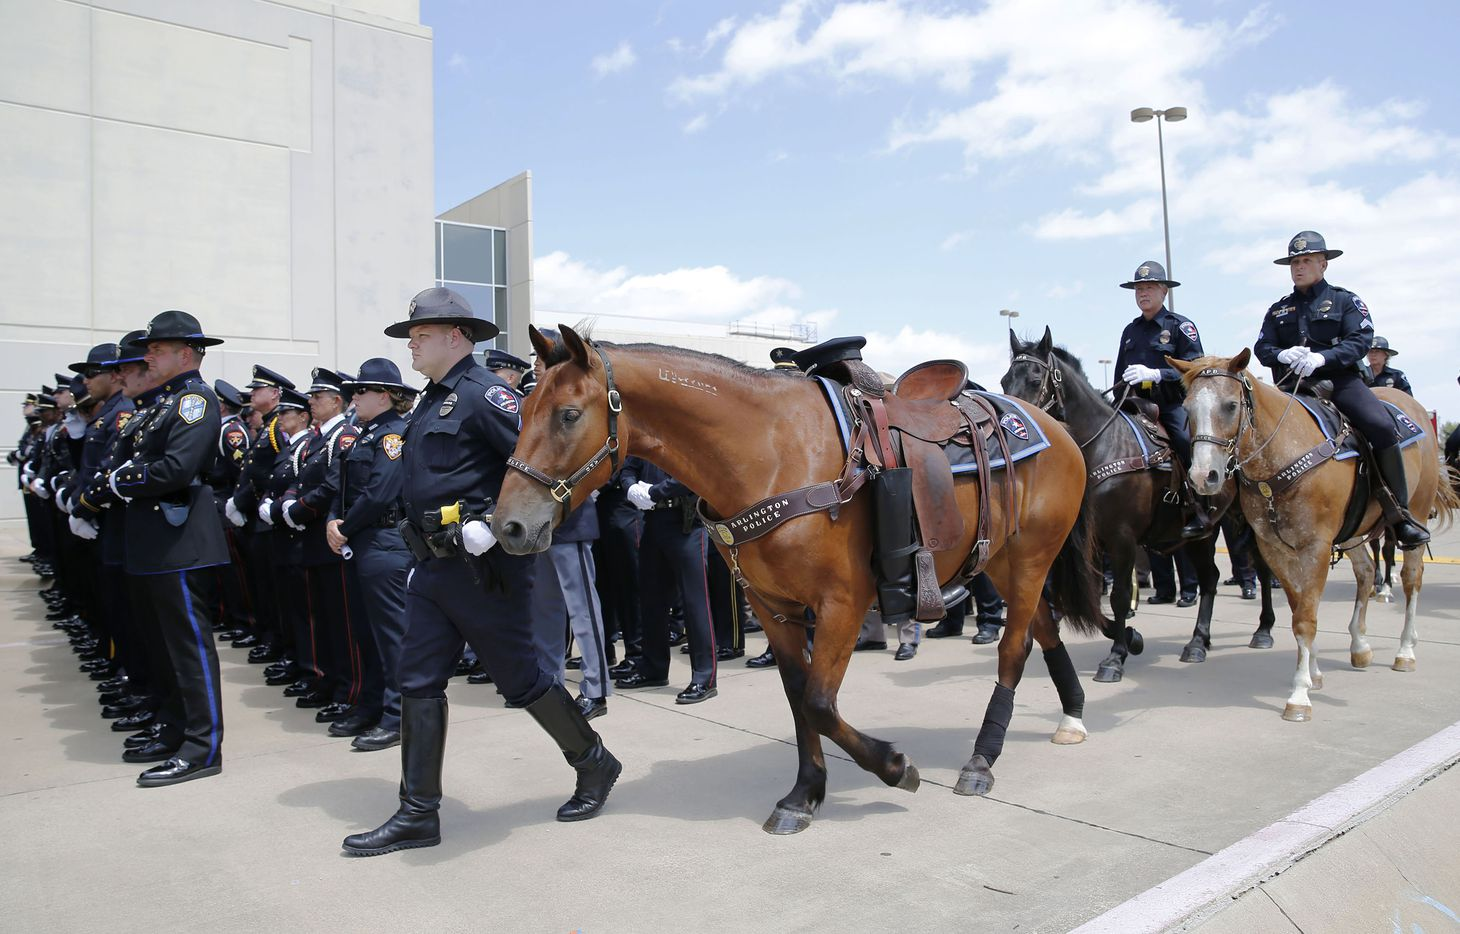 A riderless horse was guided down the street during the memorial service for DART Officer Brent Thompson on Wednesday.